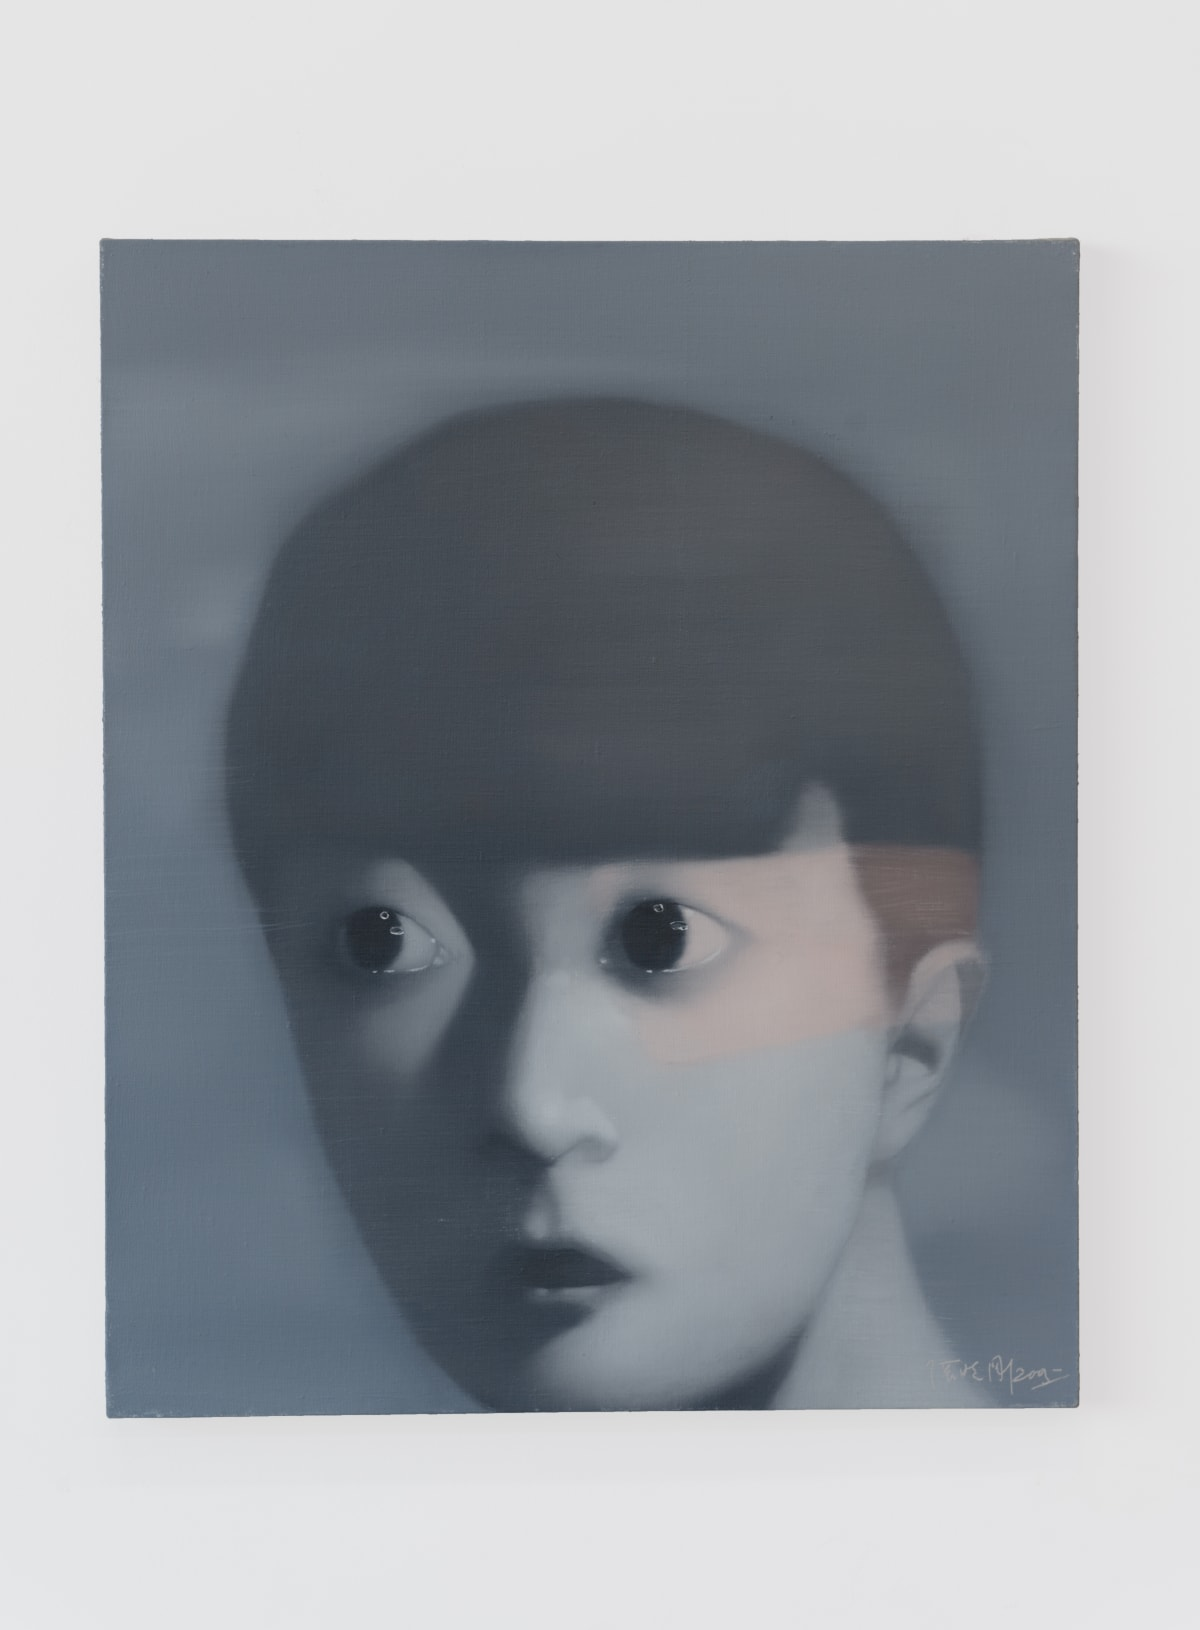 Zhang Xiaogang, Untitled (Bloodline Series), 2005